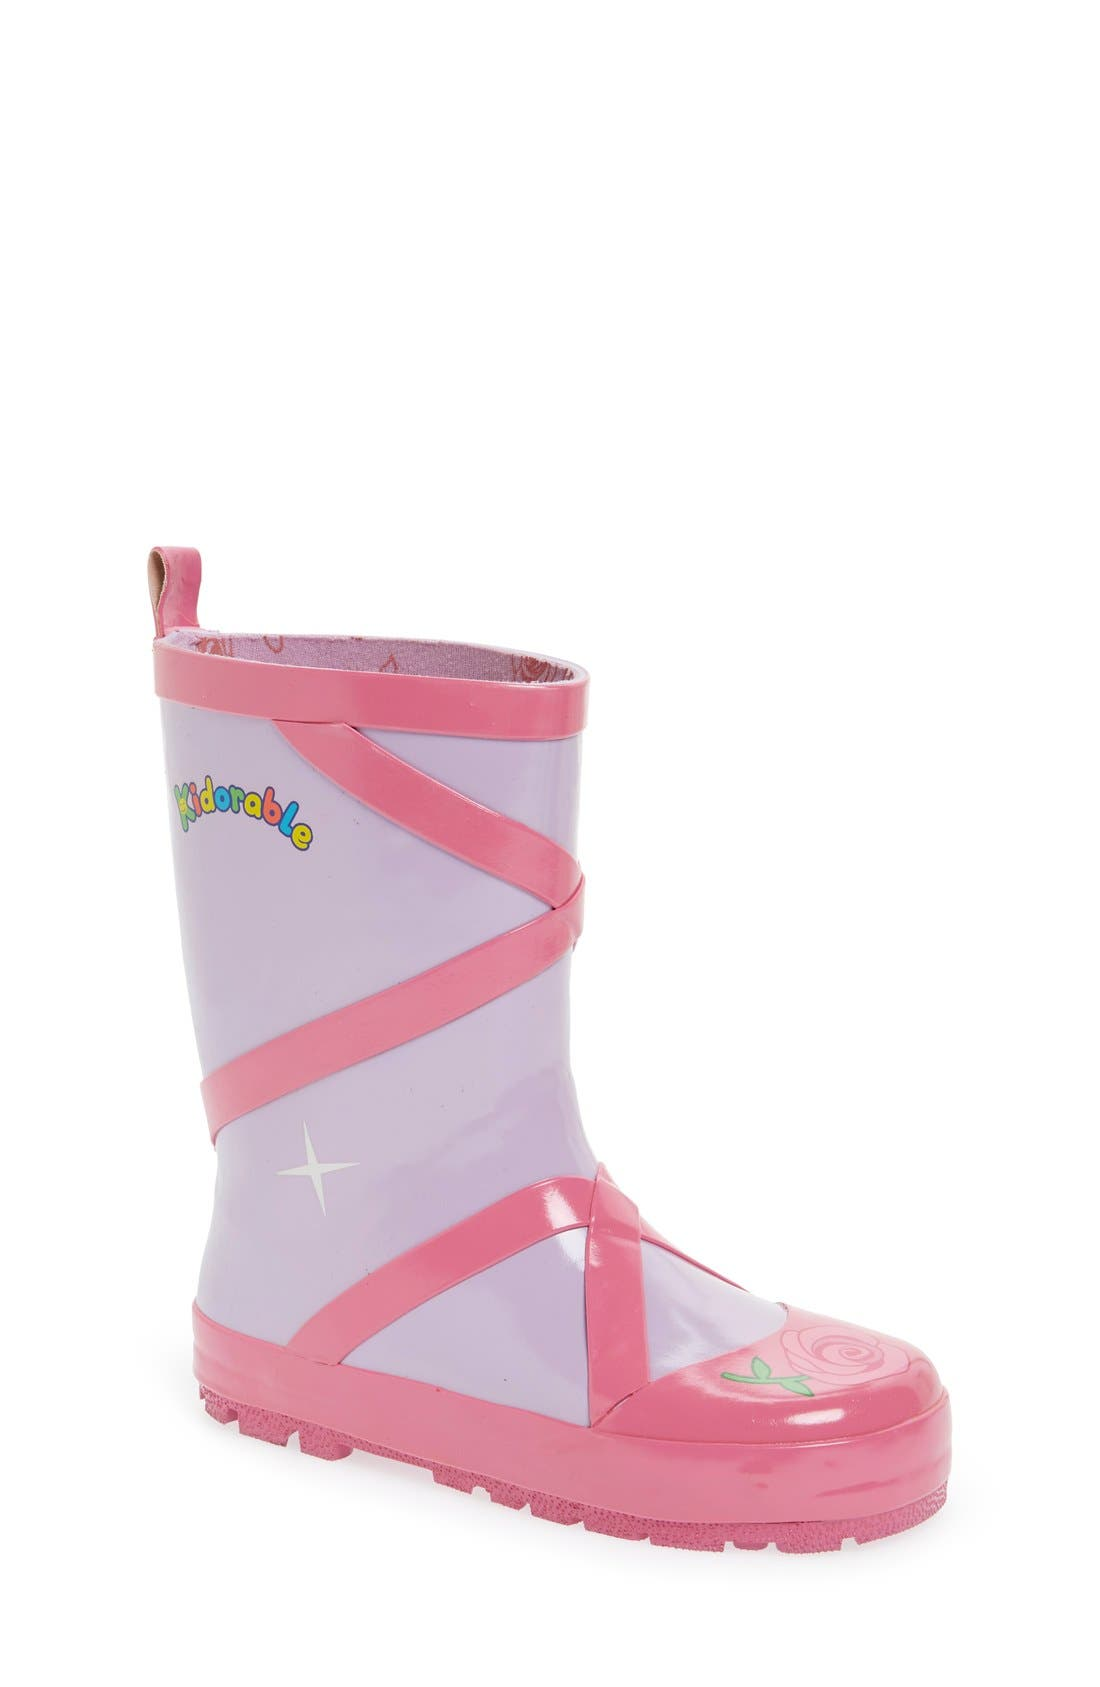 'Ballerina' Waterproof Rain Boot,                             Main thumbnail 1, color,                             550